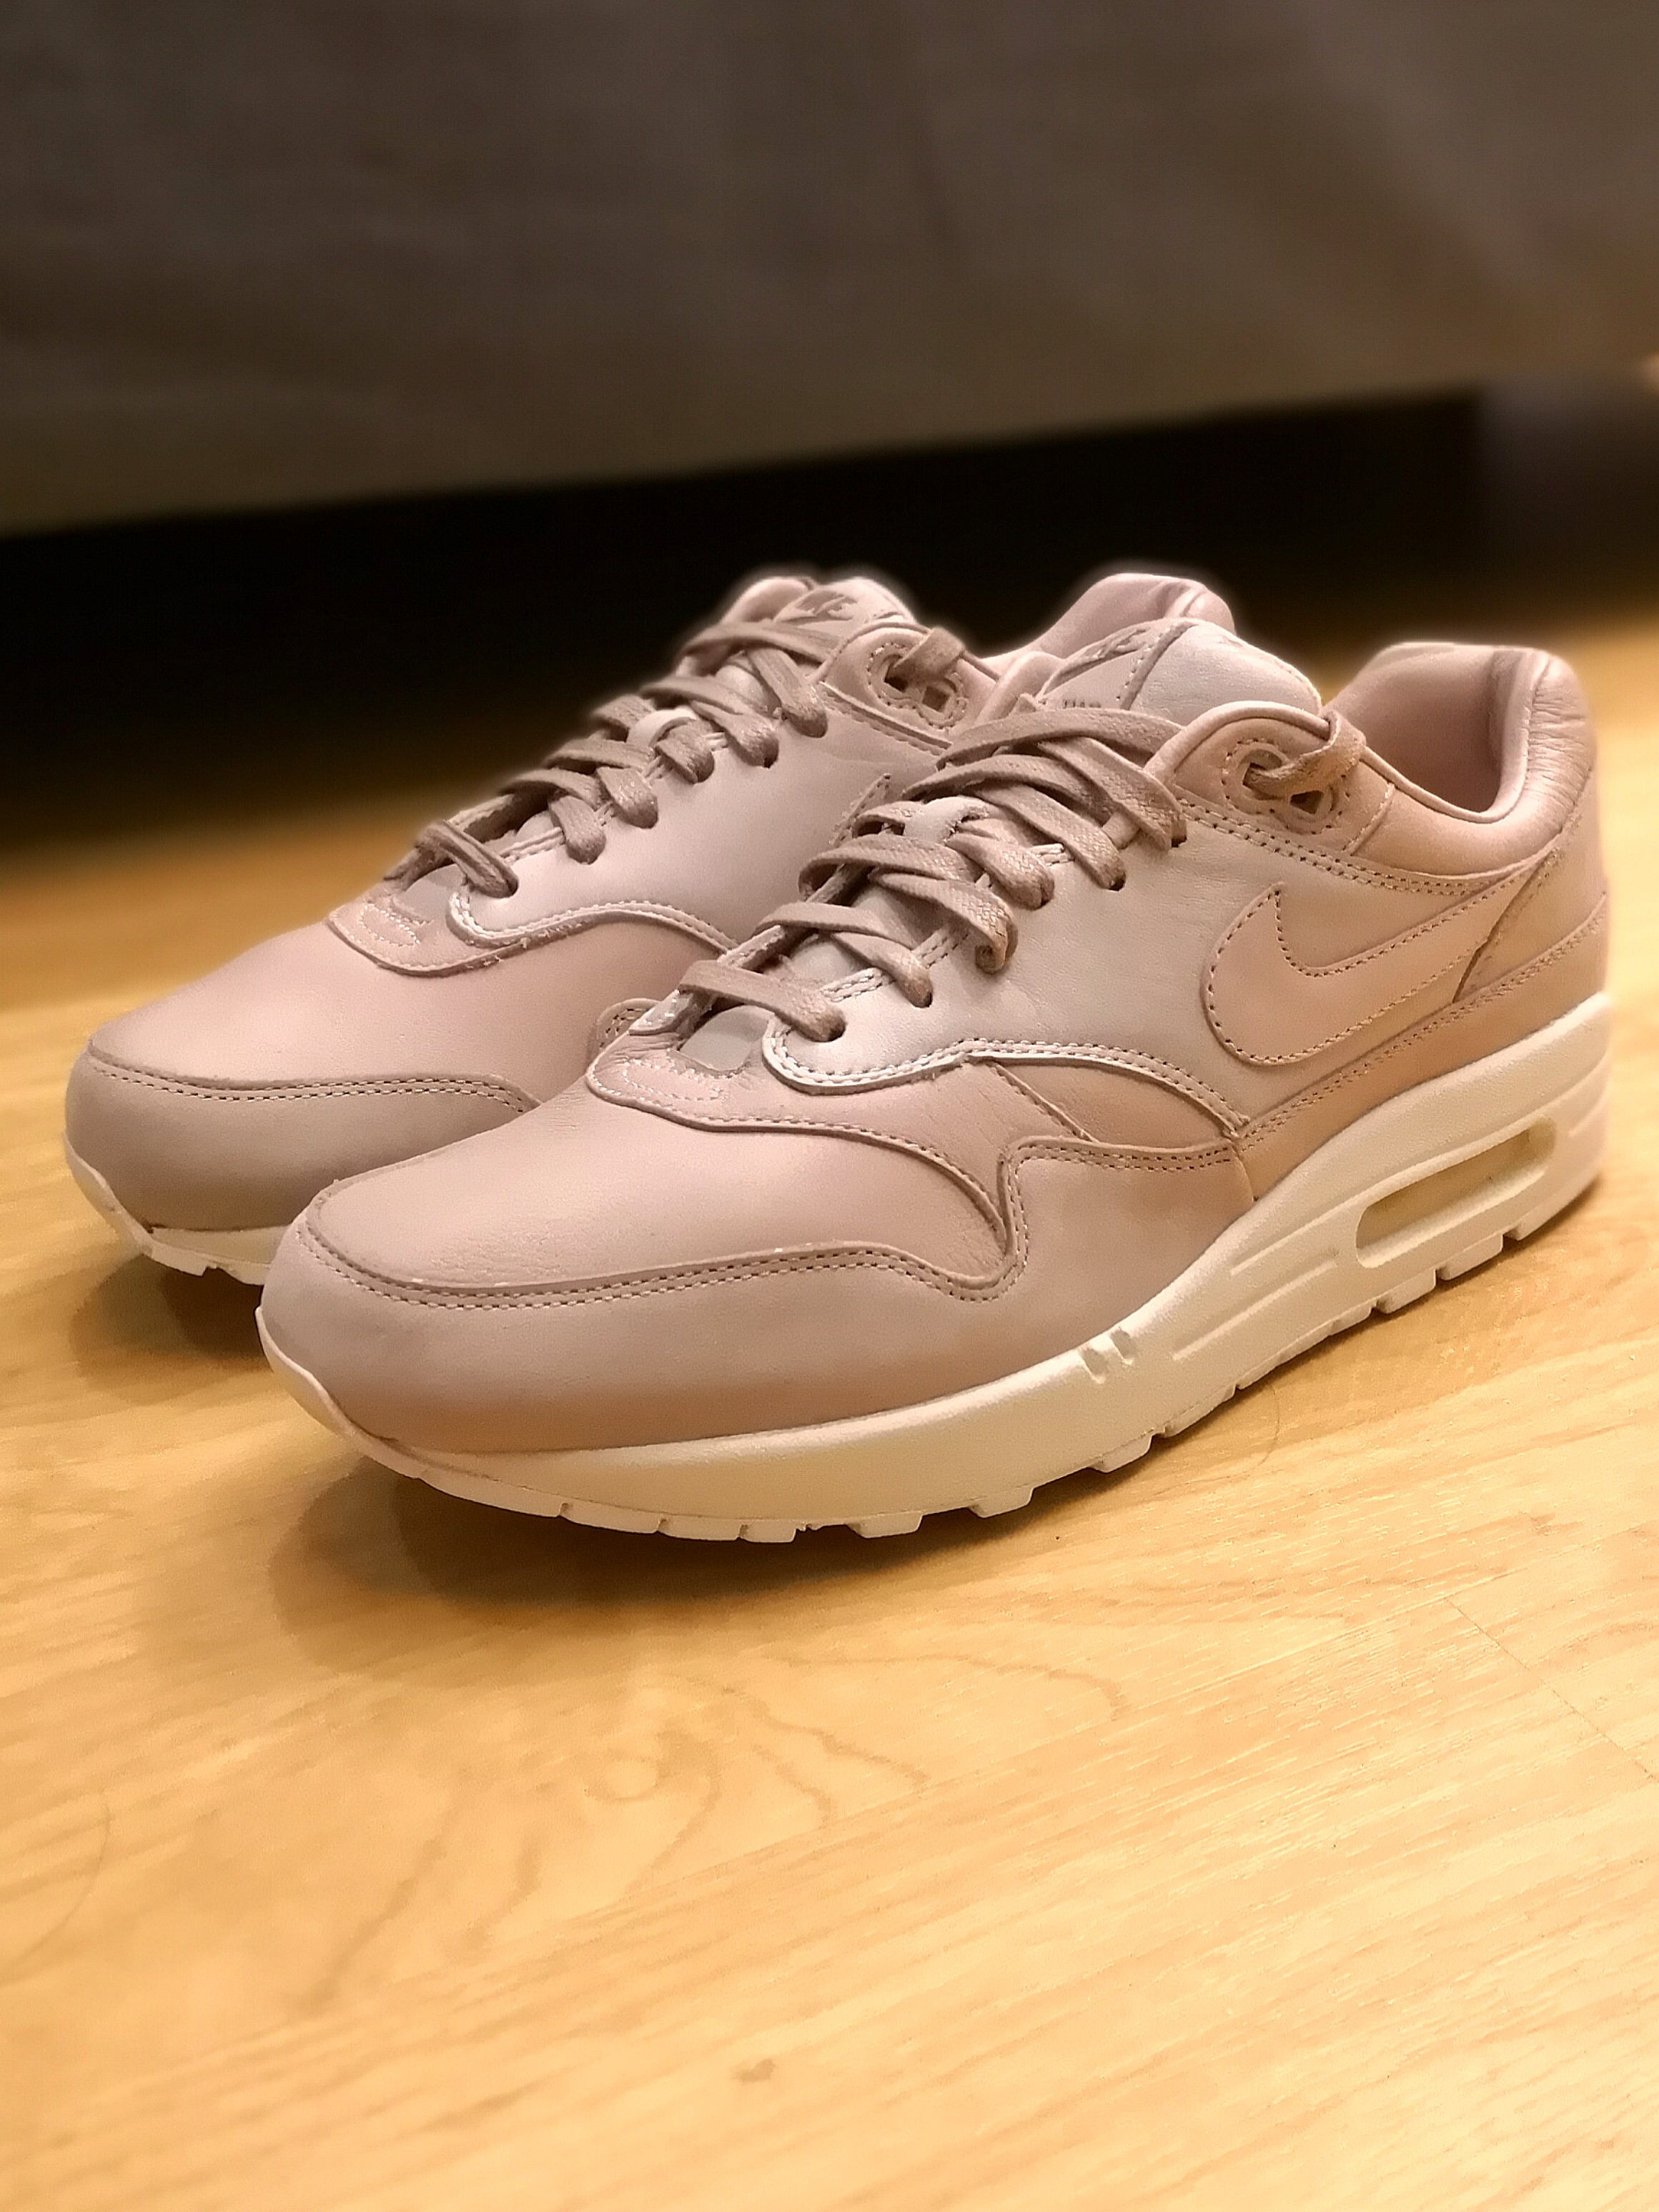 pretty nice 56806 c8a1d Nike Air Max 1 Pinnacle Sand (Men Size US9.5), Mens Fashion